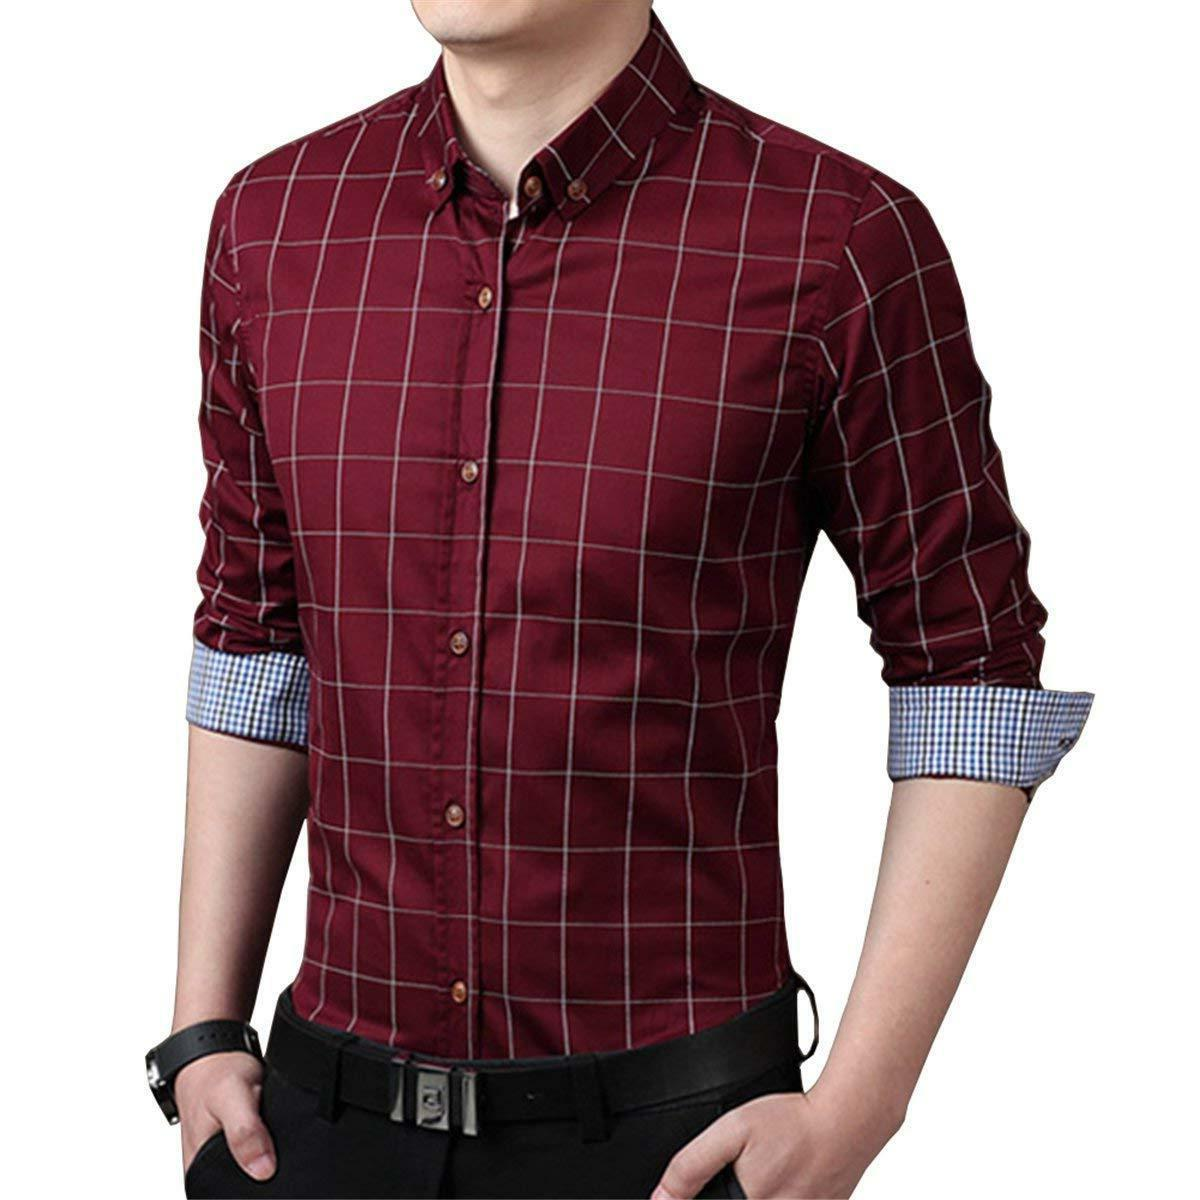 LOCALMODE Fit Shirt